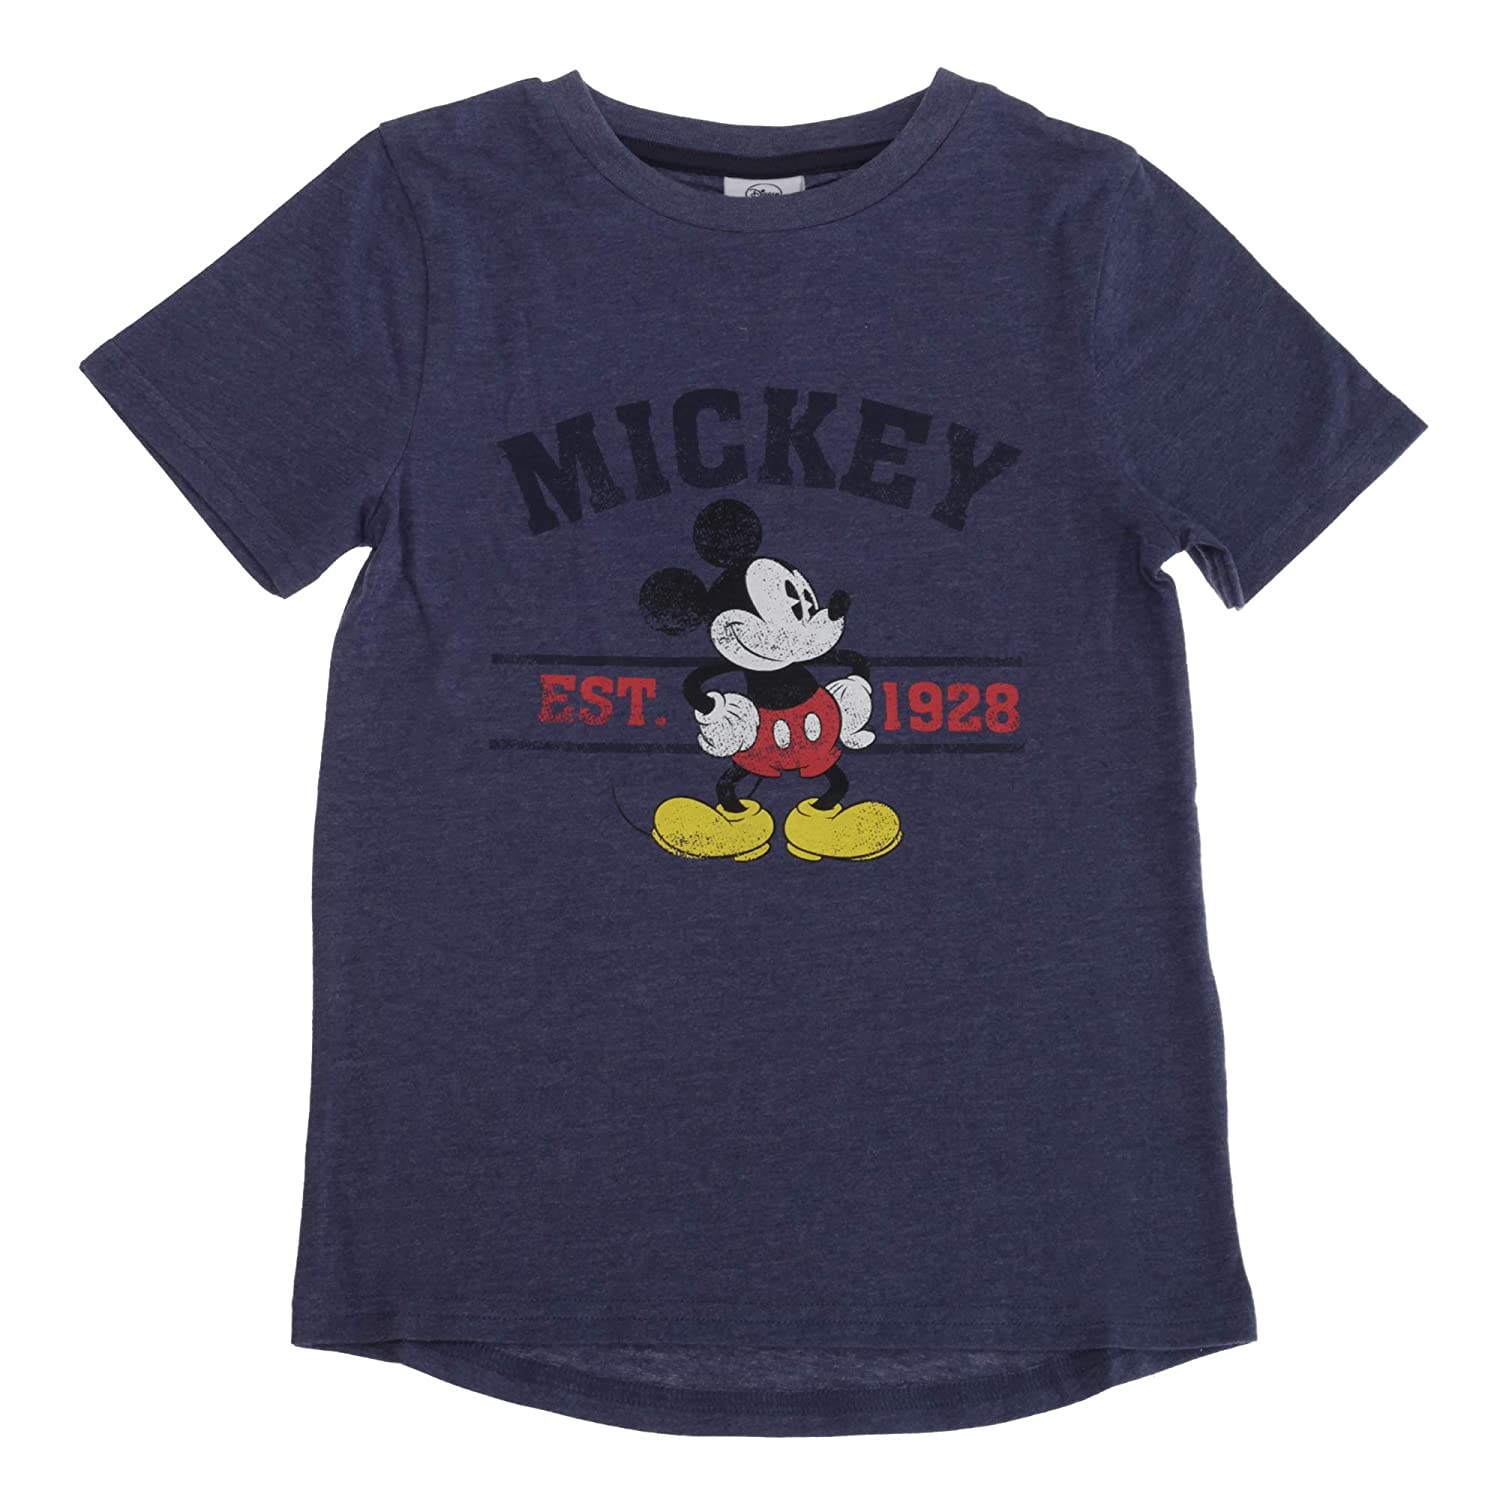 5-6 Years Disney Mickey Mouse Toddler Boys T-Shirt Blue Marl